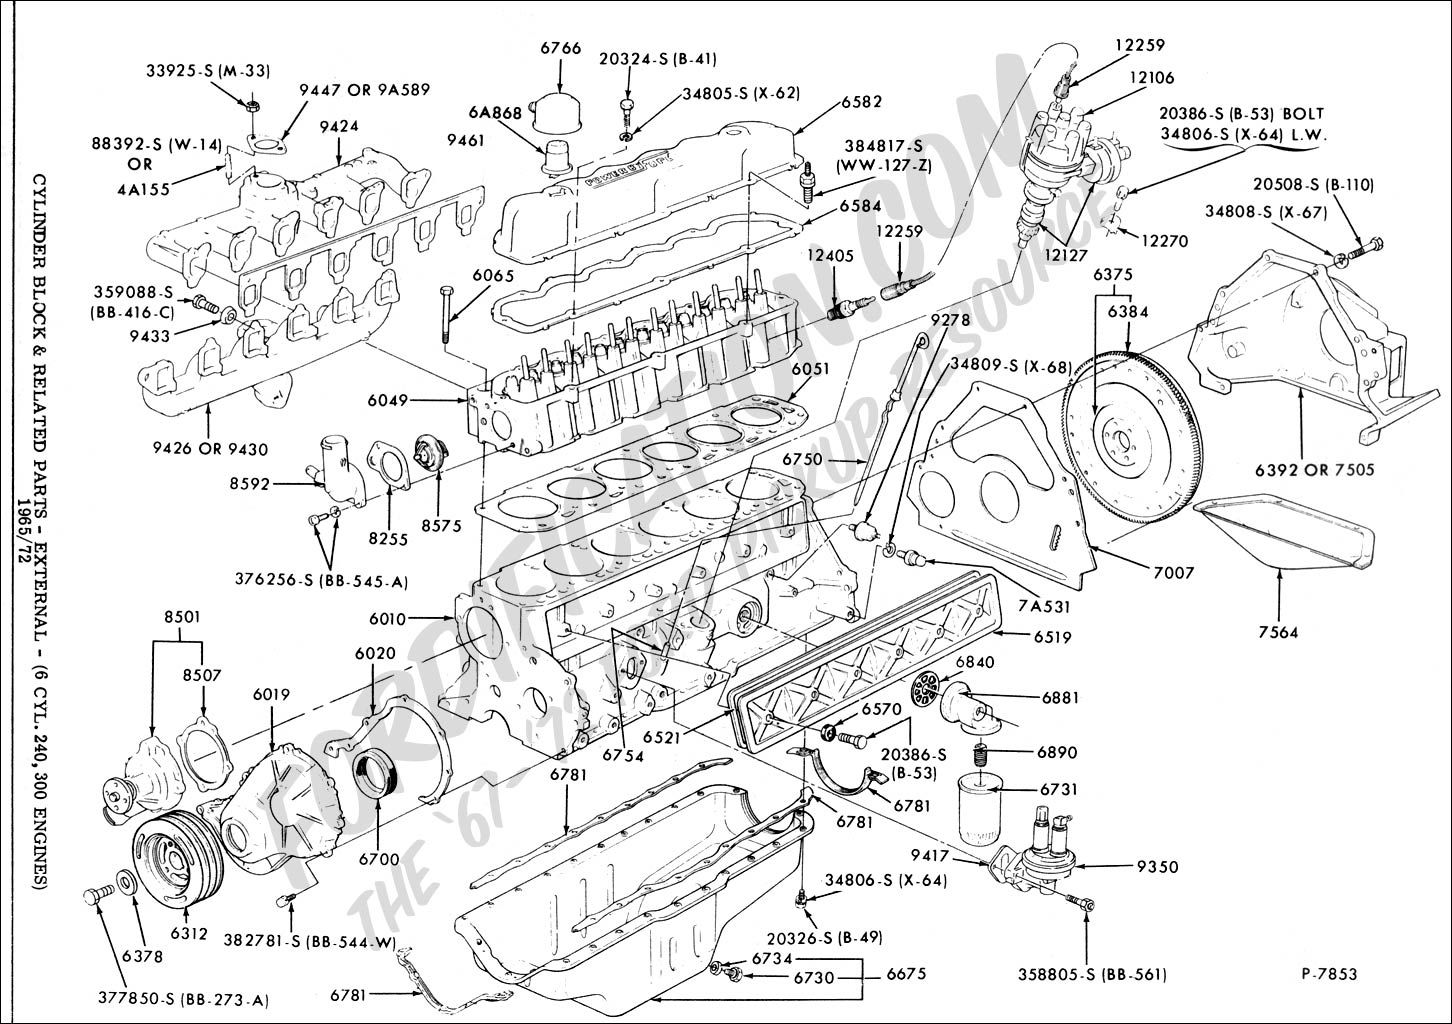 Ford 4 9l 300 Cubic Inch Inline 6 Cylinder Ford Truck Ford F150 Diagram Design